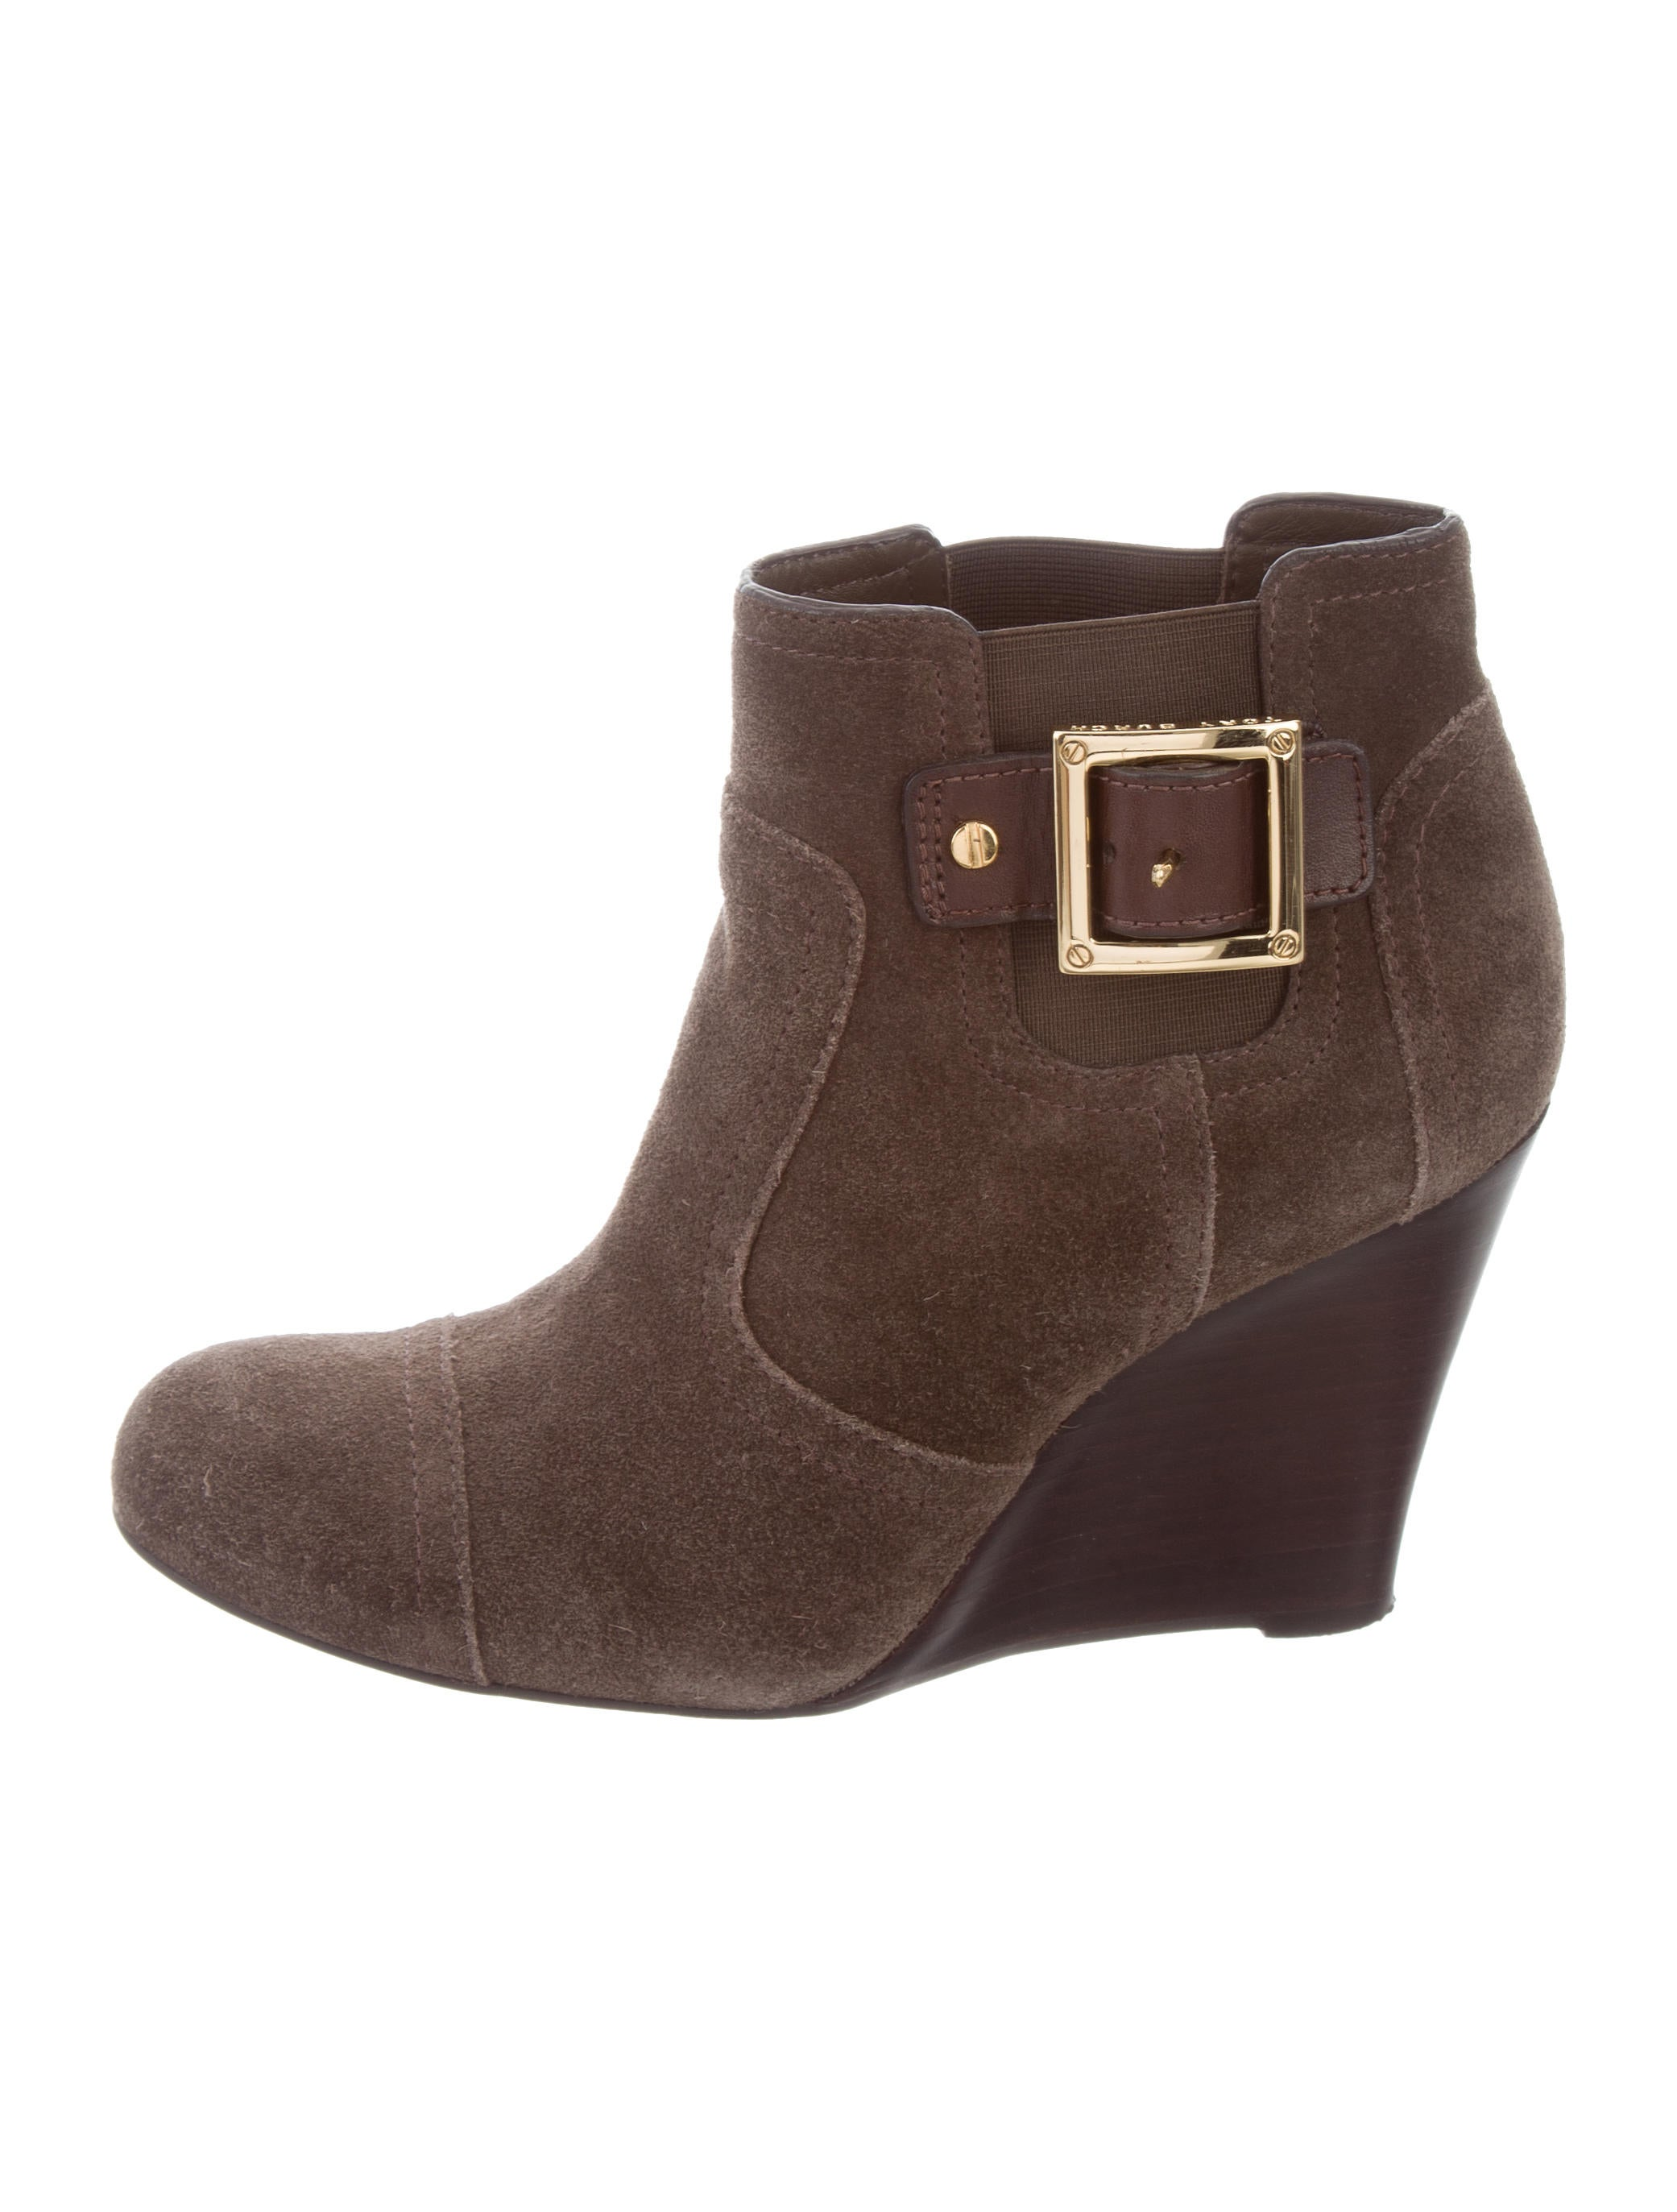 burch suede wedge ankle boots shoes wto110489